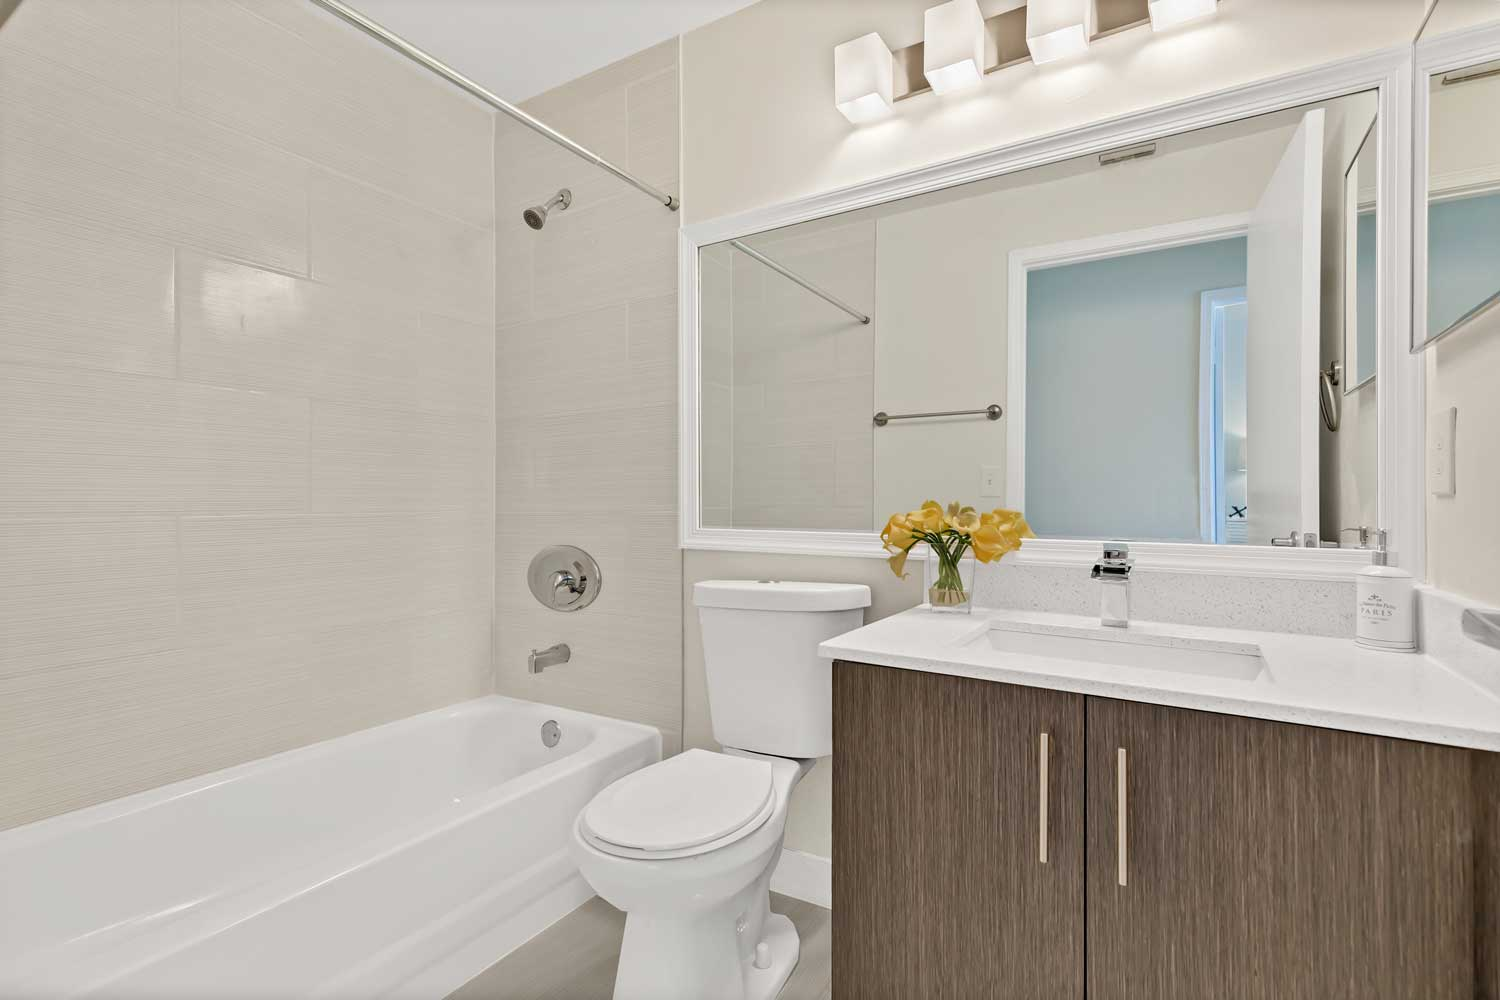 Shower and Bathtub at Windsor Castle Apartments in Coral Springs, Florida